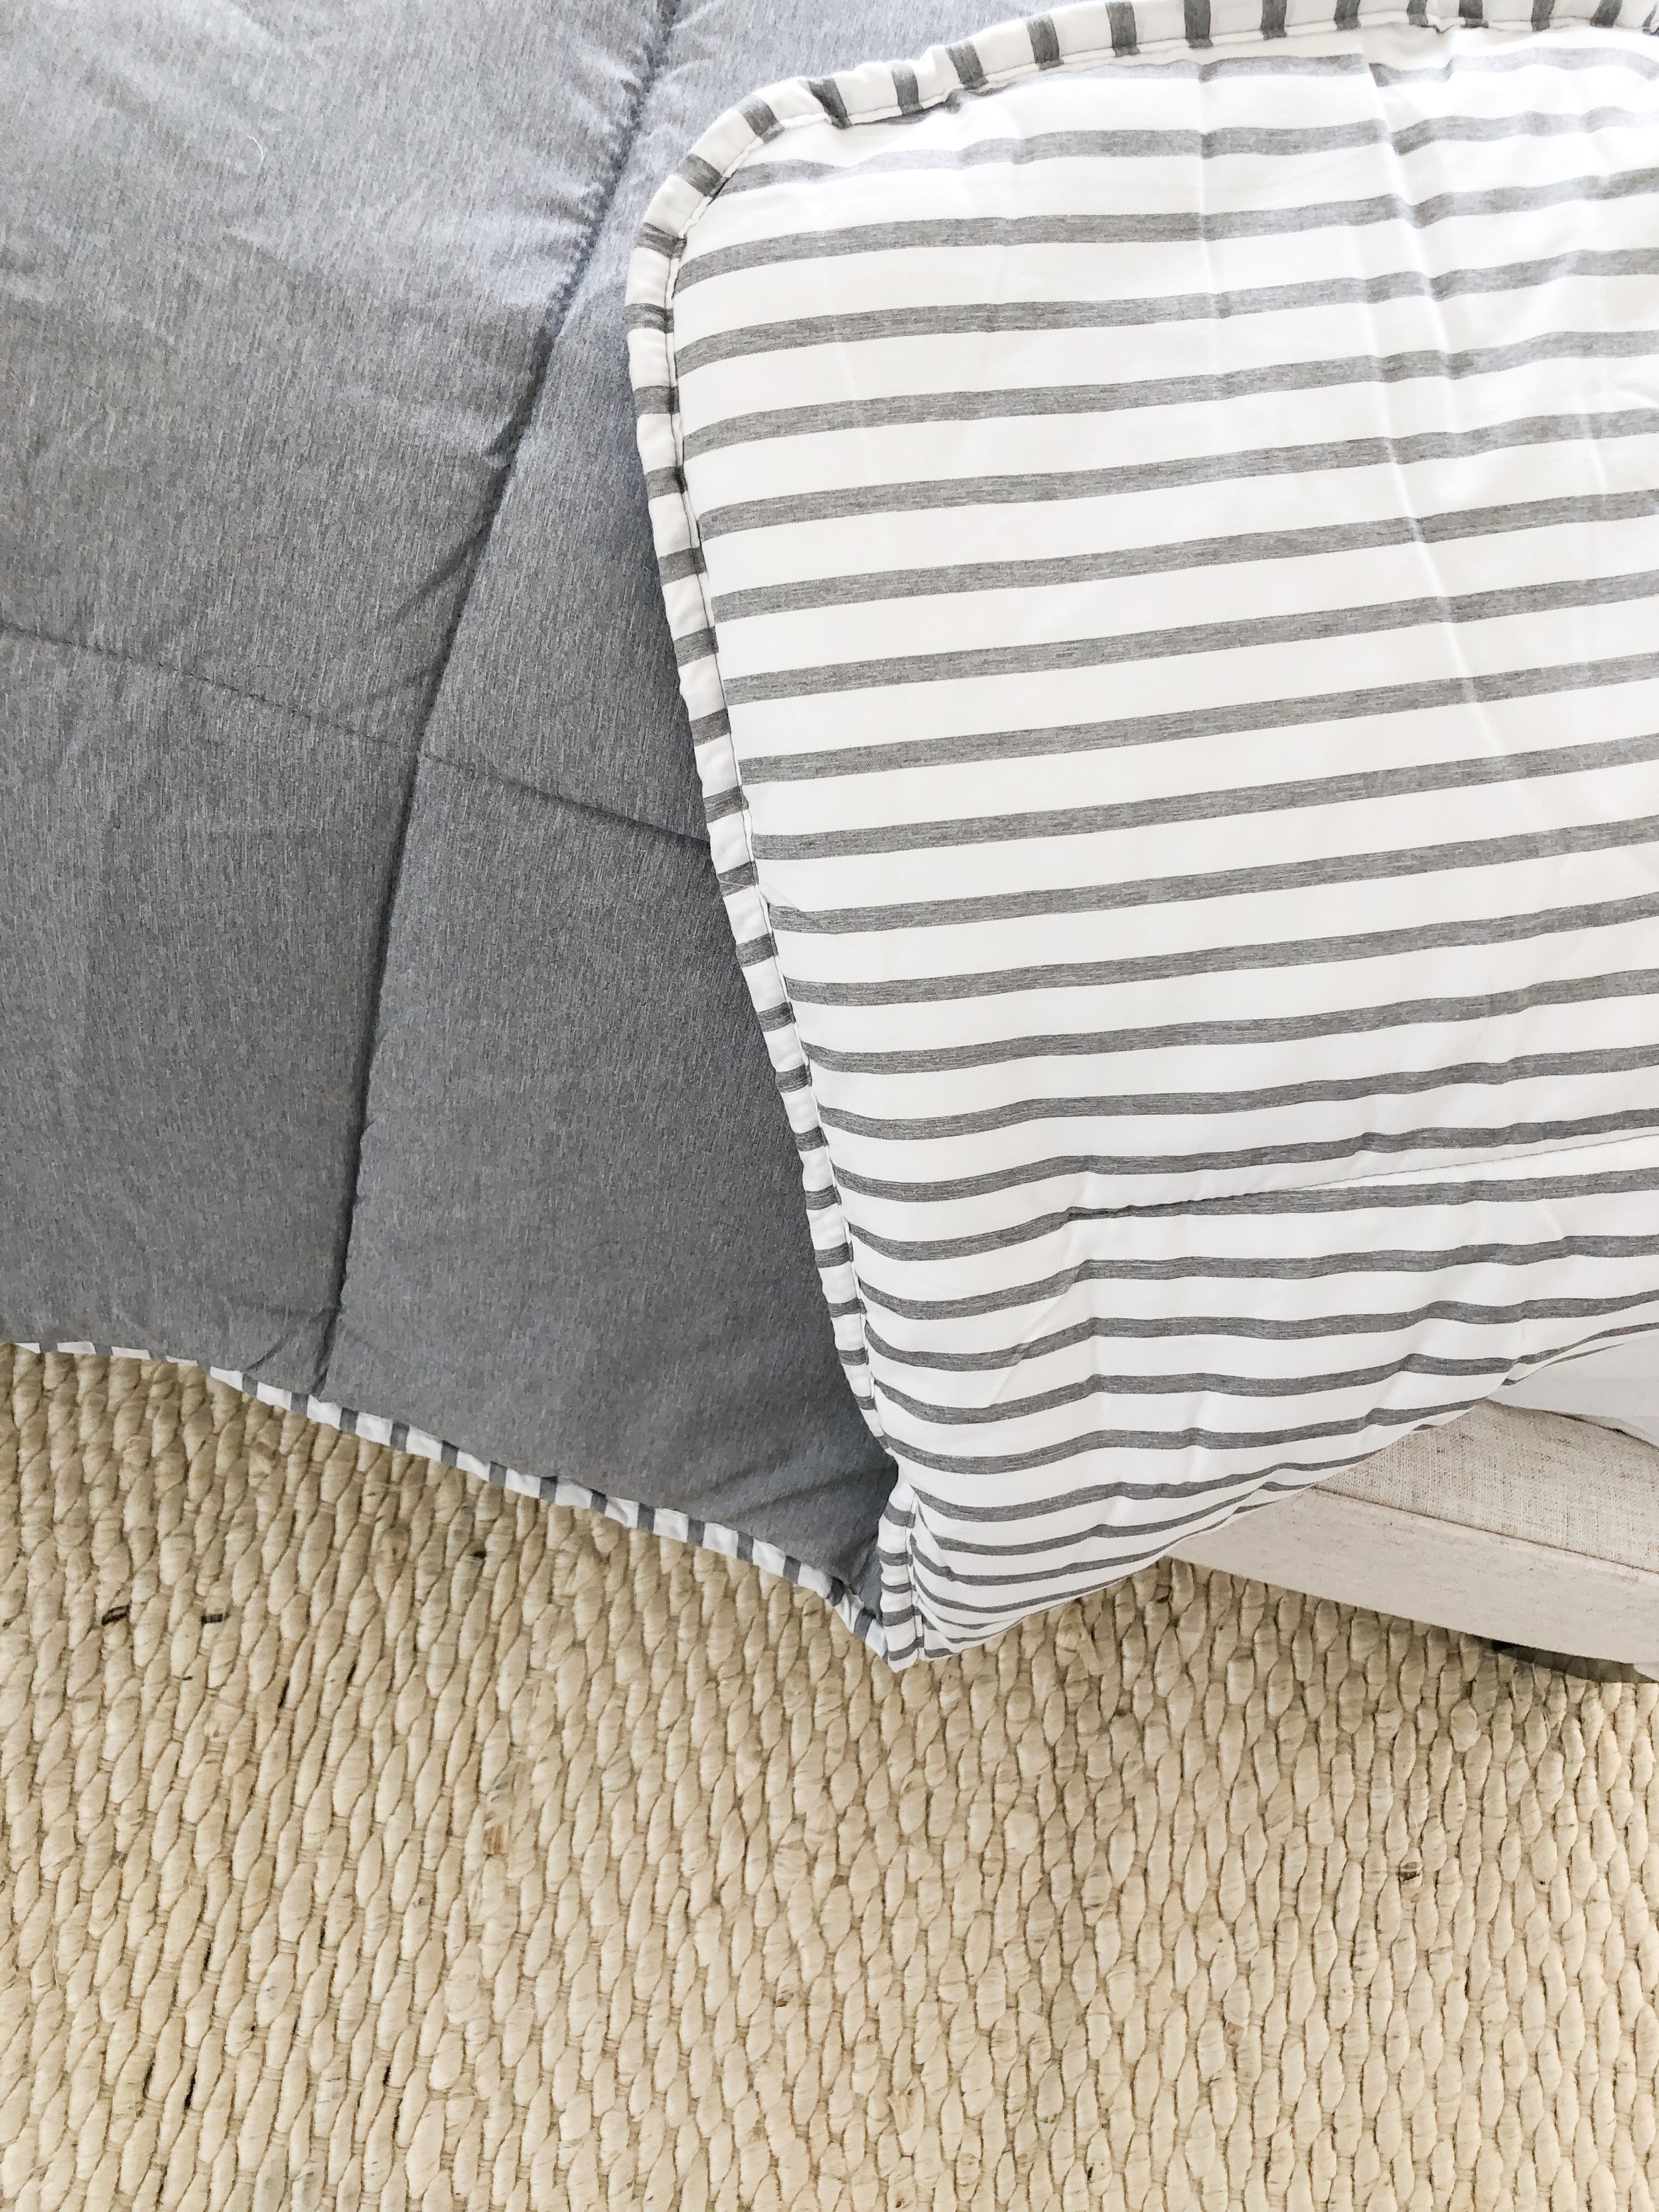 A close-up of the reversible chambray quilt I chose. One side is a blue/gray chambray and the other side is gray and white striped. Super lightweight and perfect for layering onto a bed.